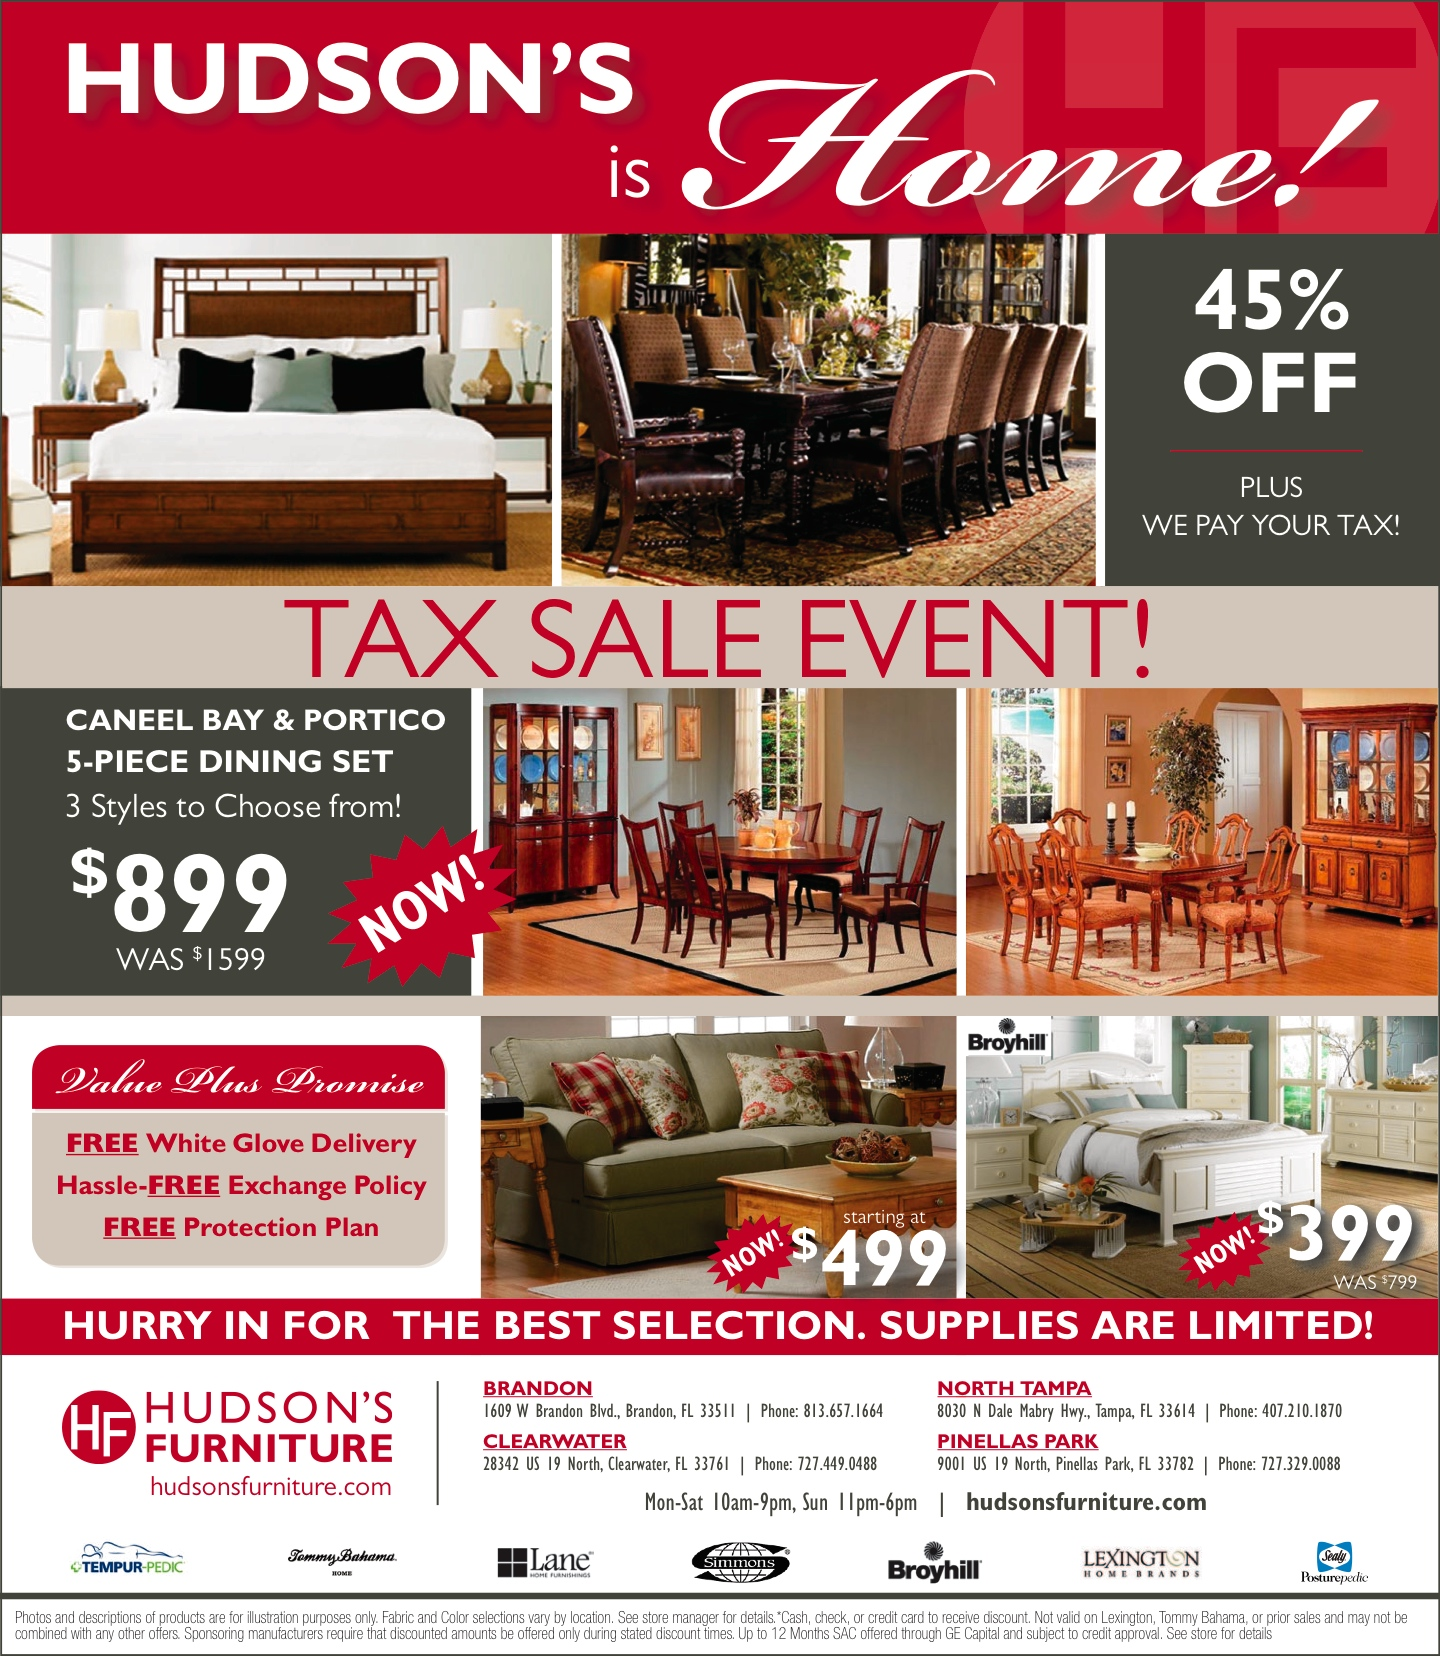 When Are Furniture Sales: Tax Sale Event: 45% Off & We Pay Your Tax